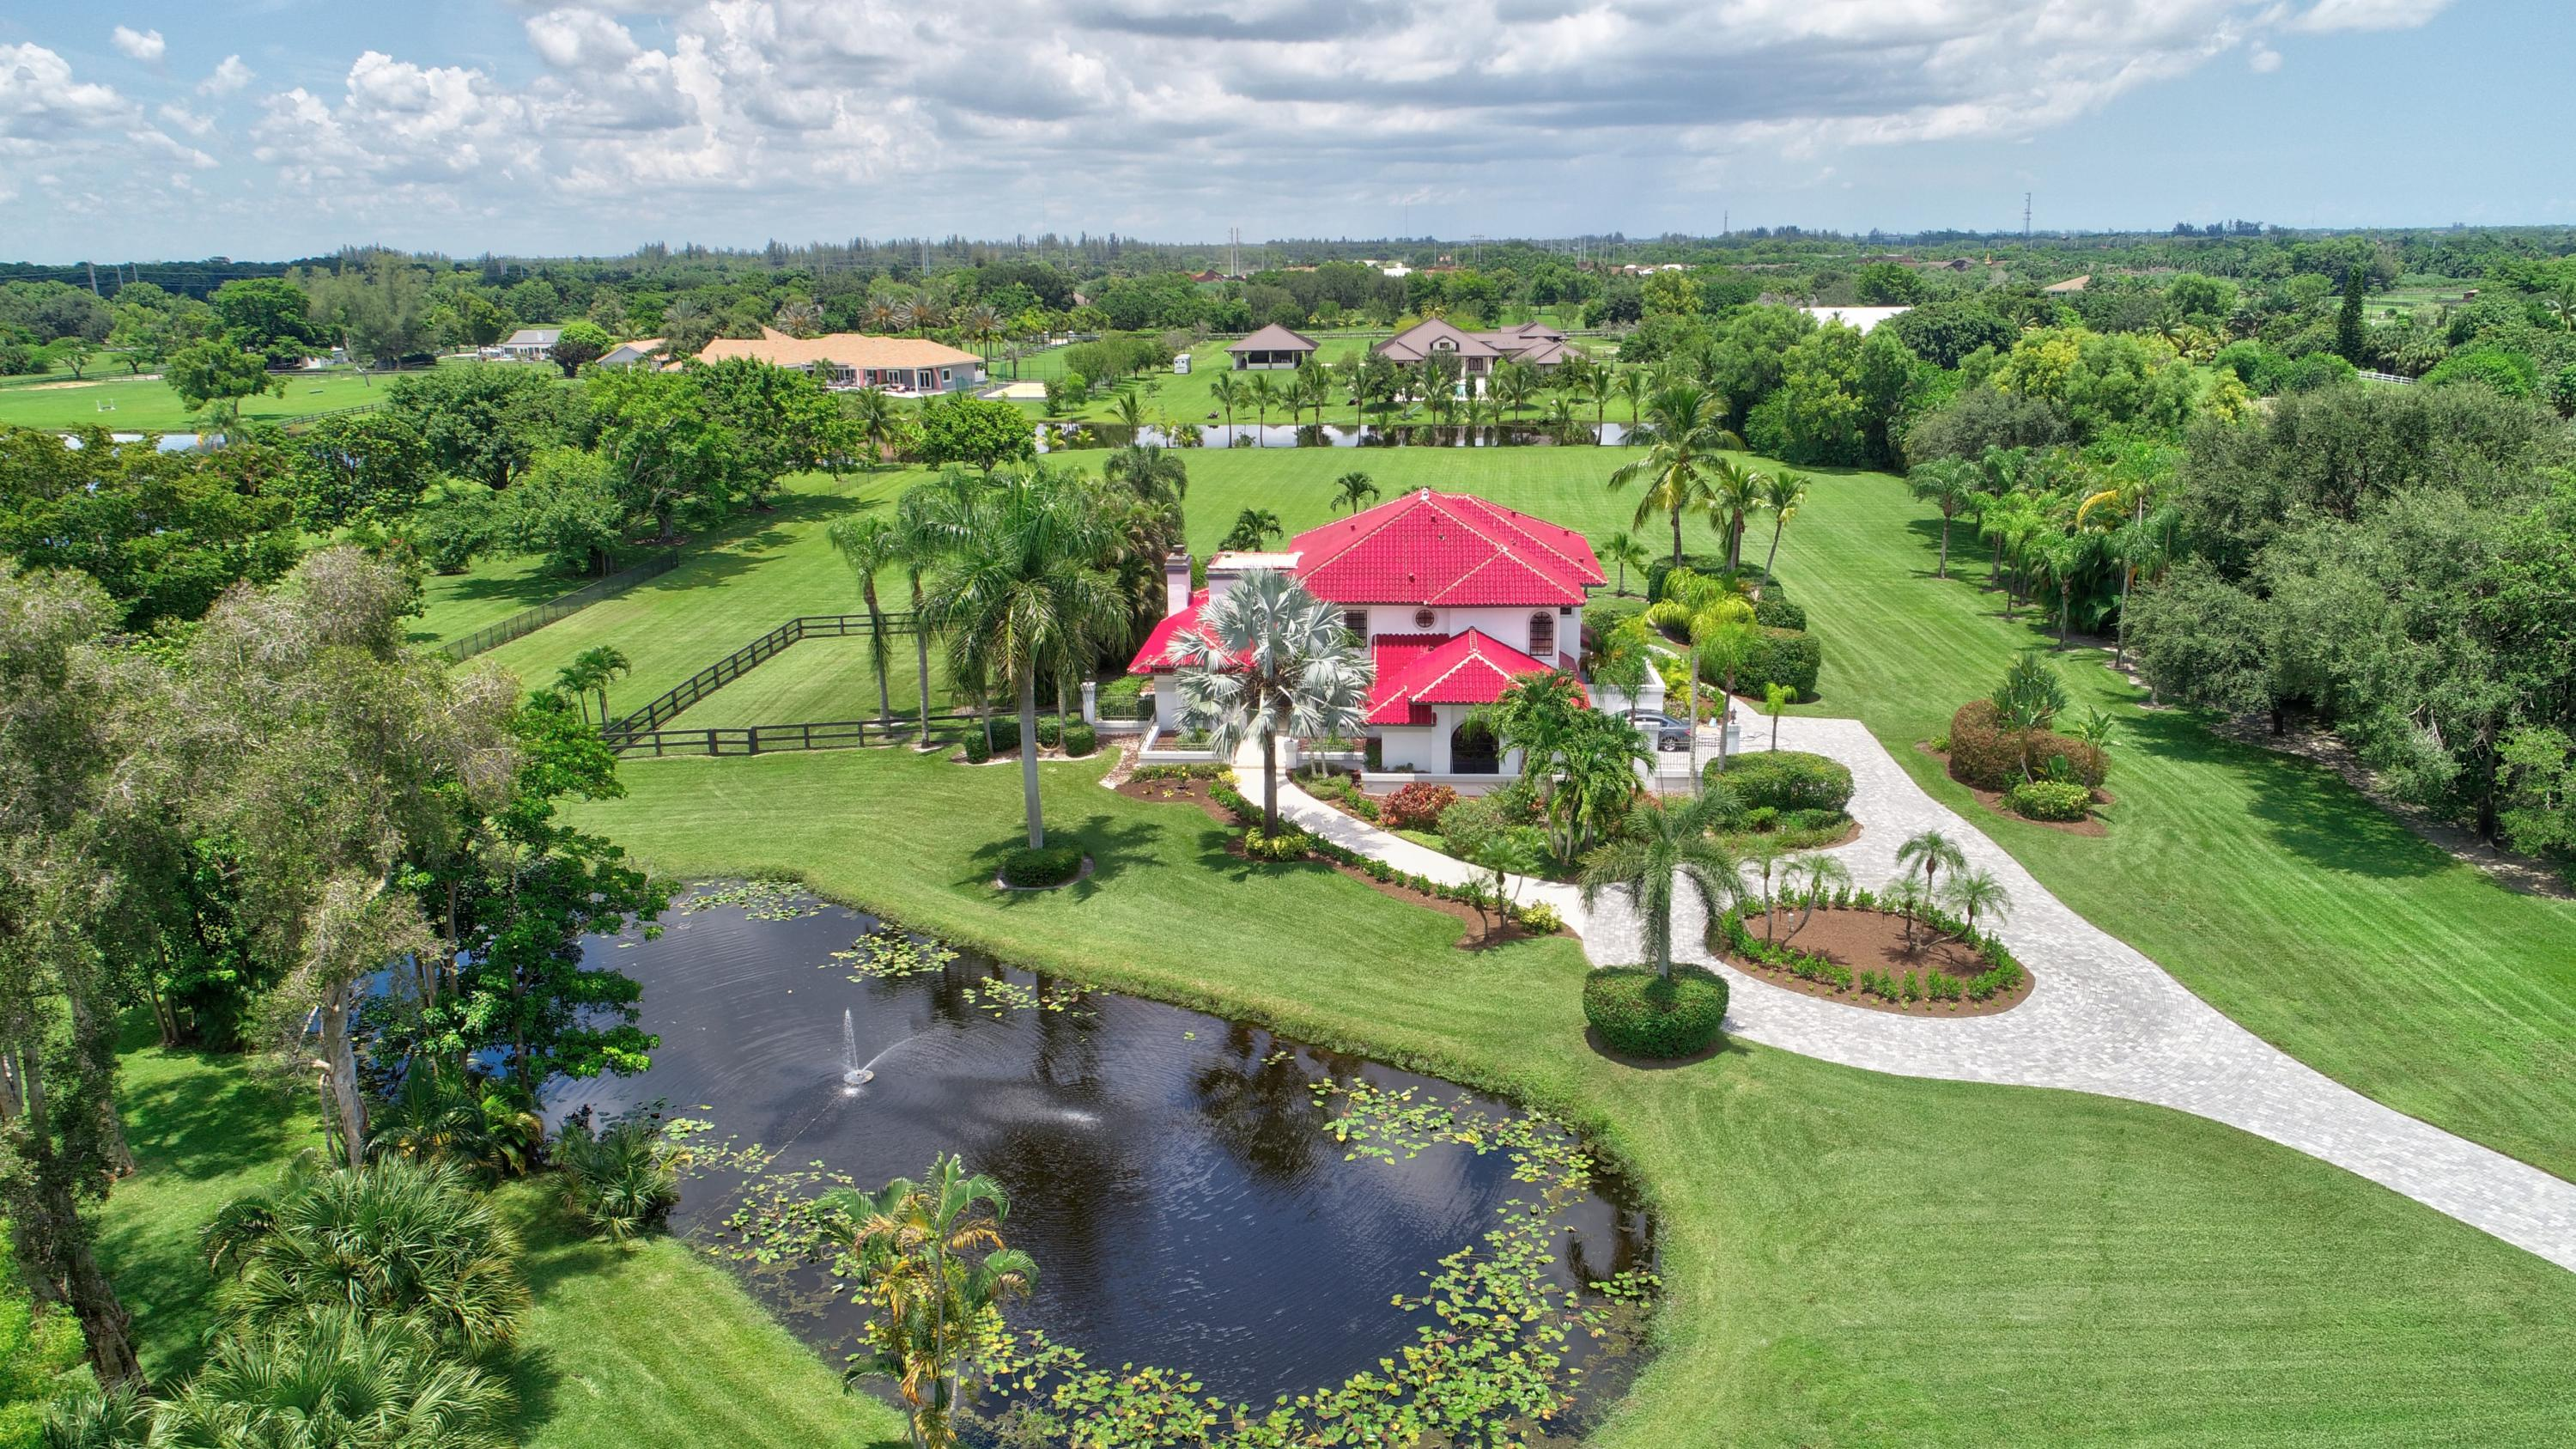 PALM BEACH FARMS CO PL NO 3 E 325.1O FT OF W 341.97 FT OF TR 40 BLK 67 & N 1/2 OF ABND 30 FT RD LYG S OF & ADJ THERE- TO